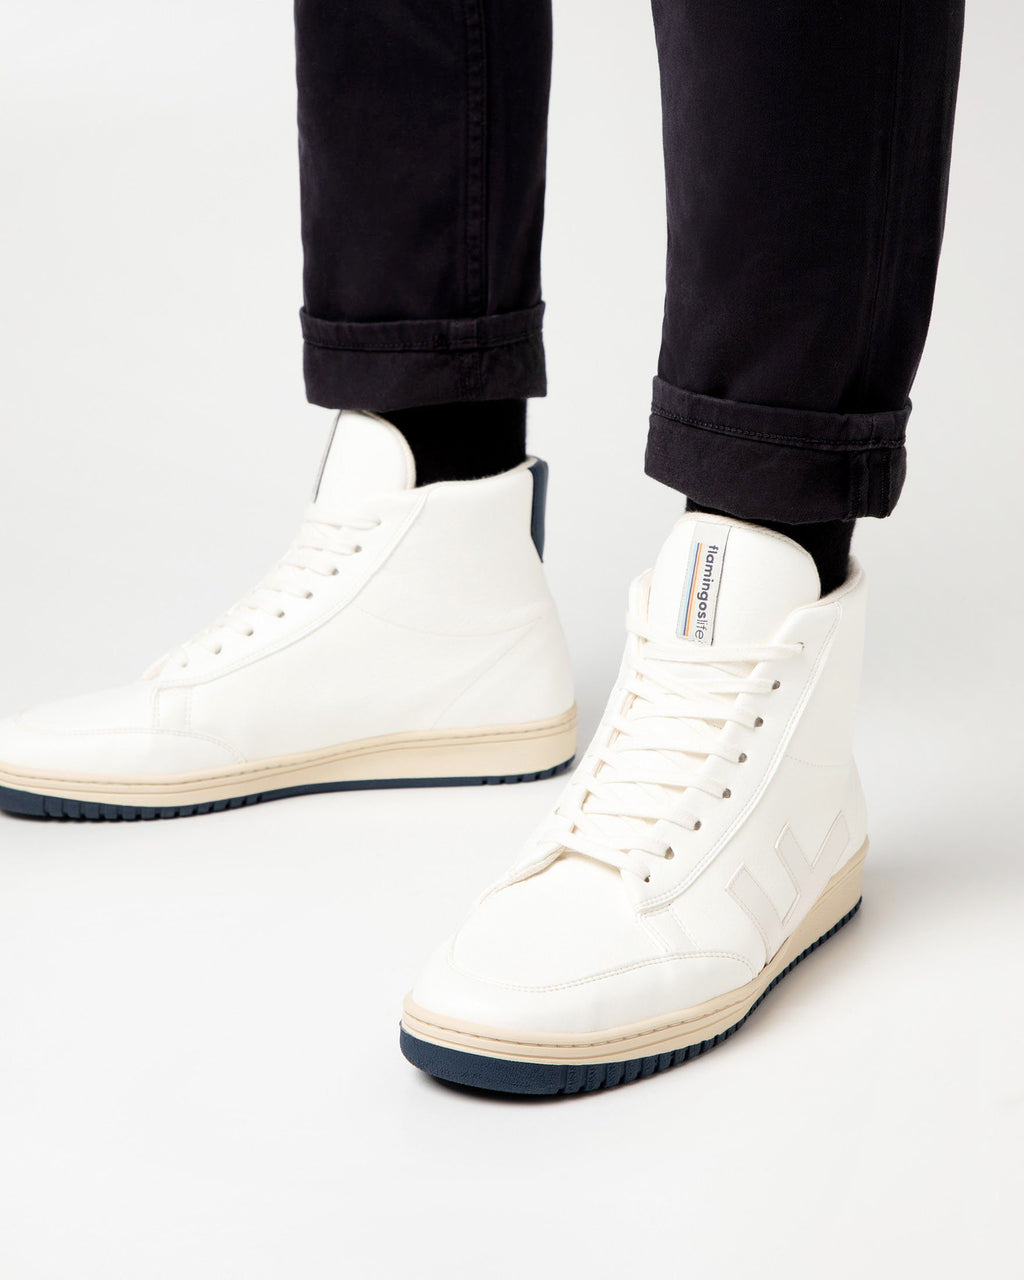 variant_2 | EN White Boots Shoes Men | DE Weiß Boots Herren Turnschuhe